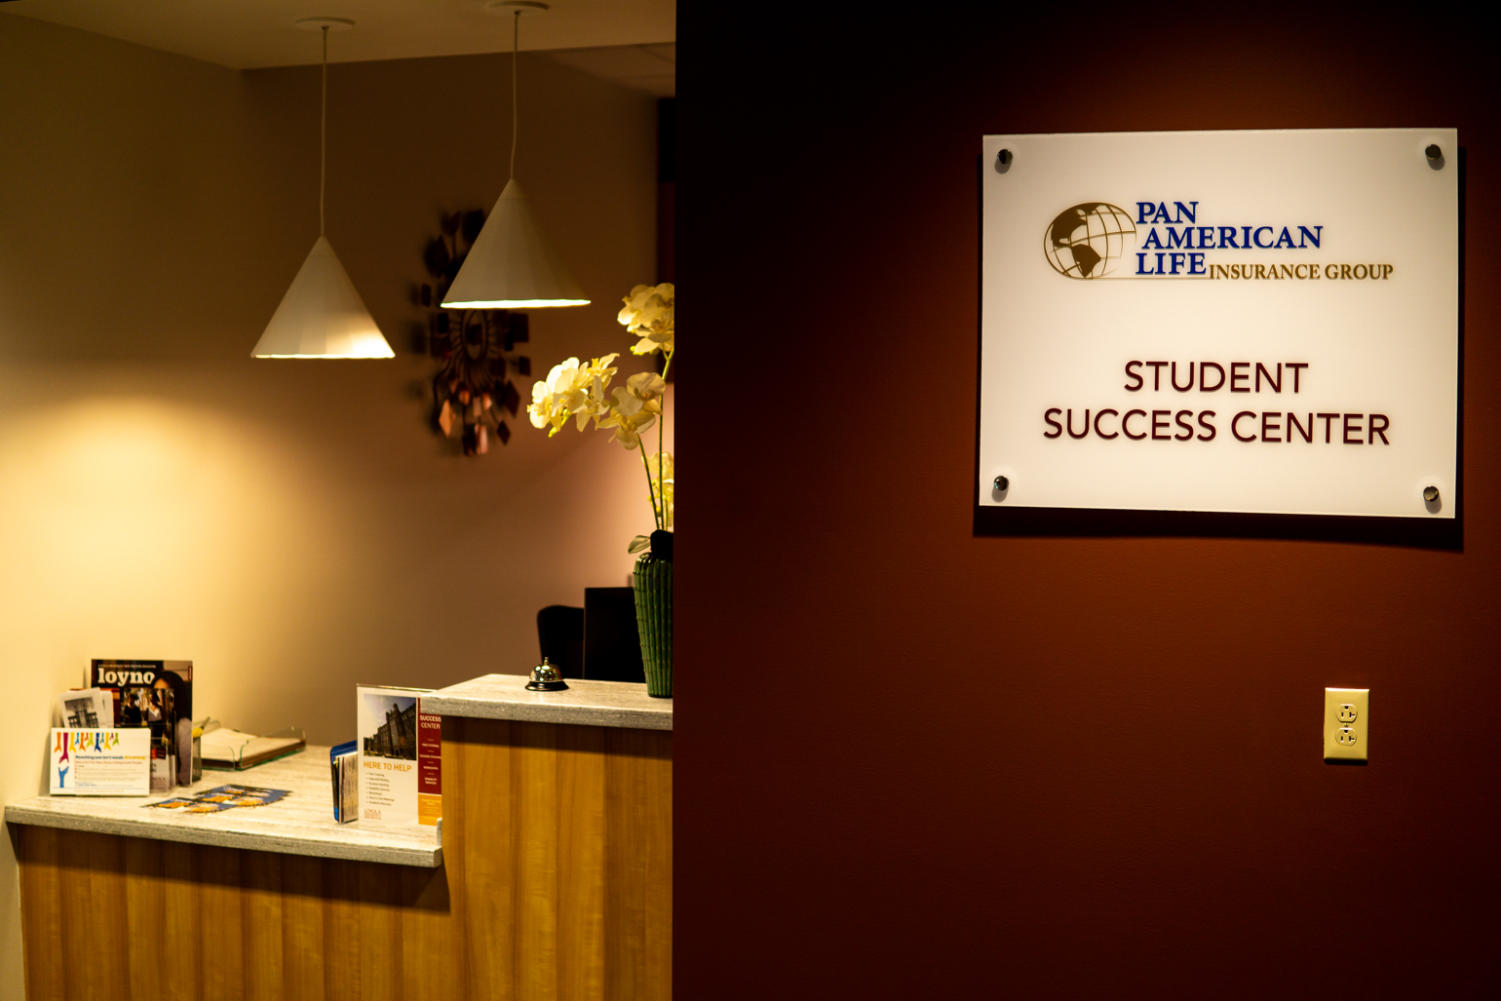 The+check-in+desk+in+the+Pan+American+Student+Success+Center+will+manage+students+visiting+all+four+offices+housed+in+the+center.+Donor+funding+from+Pan+American+Life+Insurance+and+an+anonymous+donor+created+the+%241.25+million+space.+Photo+credit%3A+Jacob+Meyer